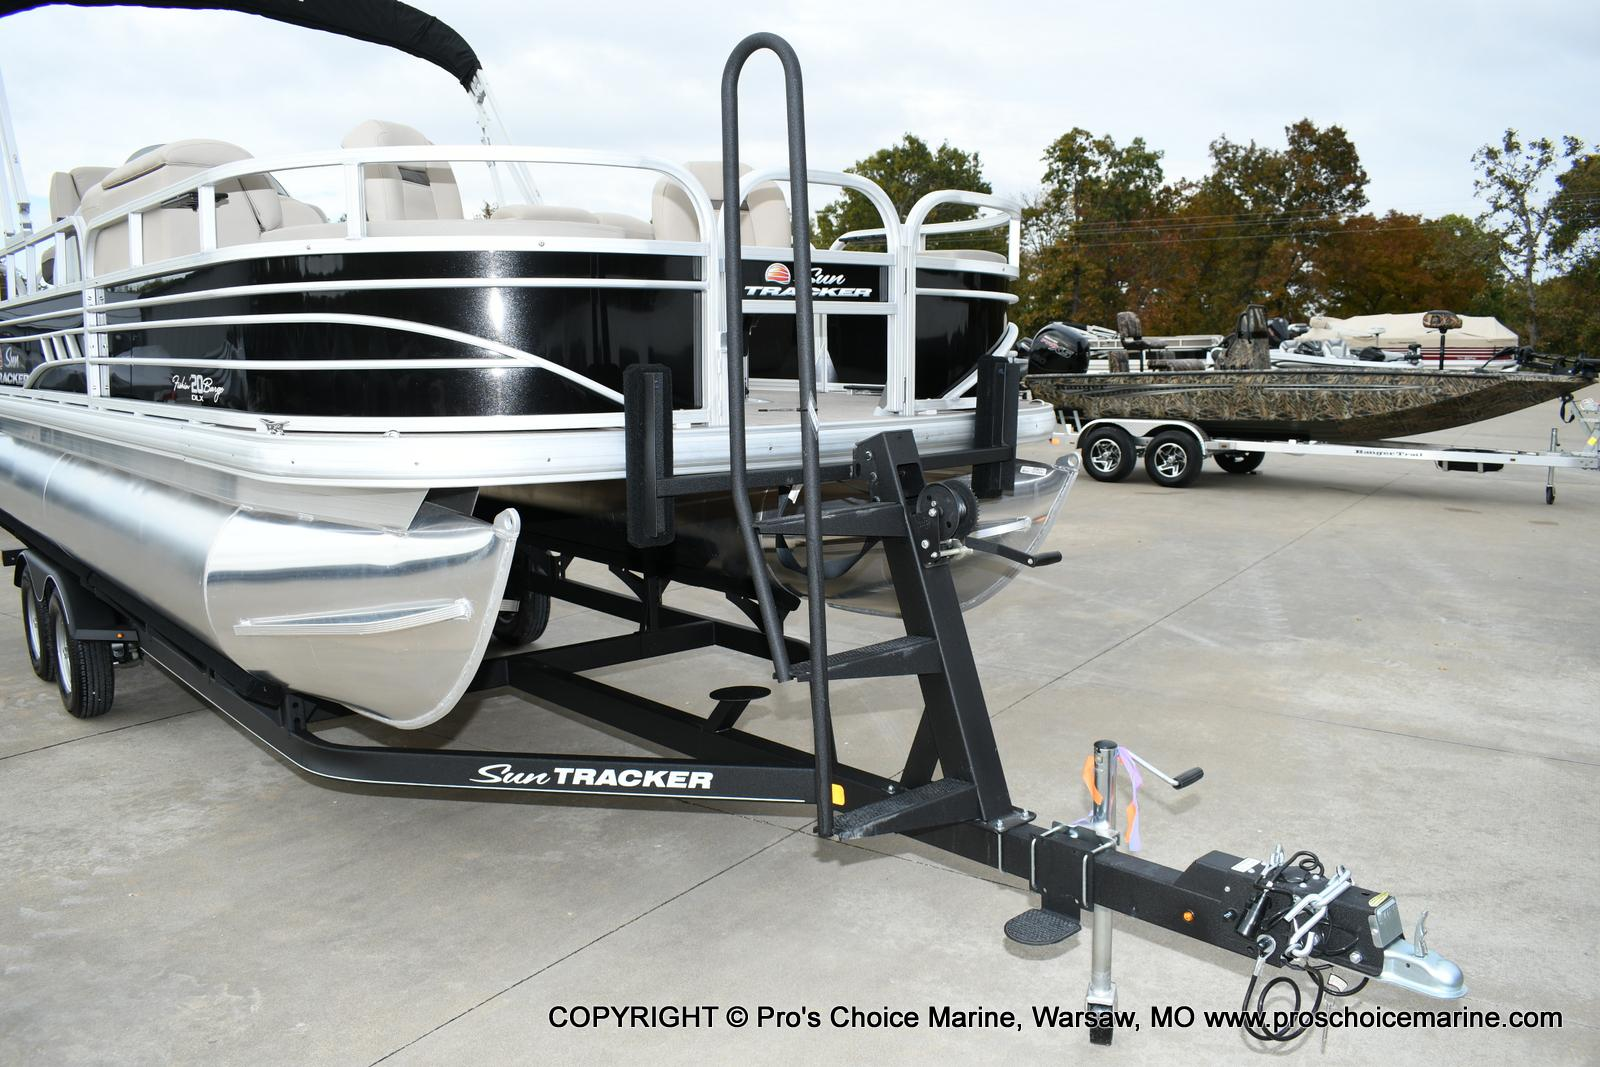 2020 Sun Tracker boat for sale, model of the boat is Fishin' Barge 20 DLX & Image # 3 of 50